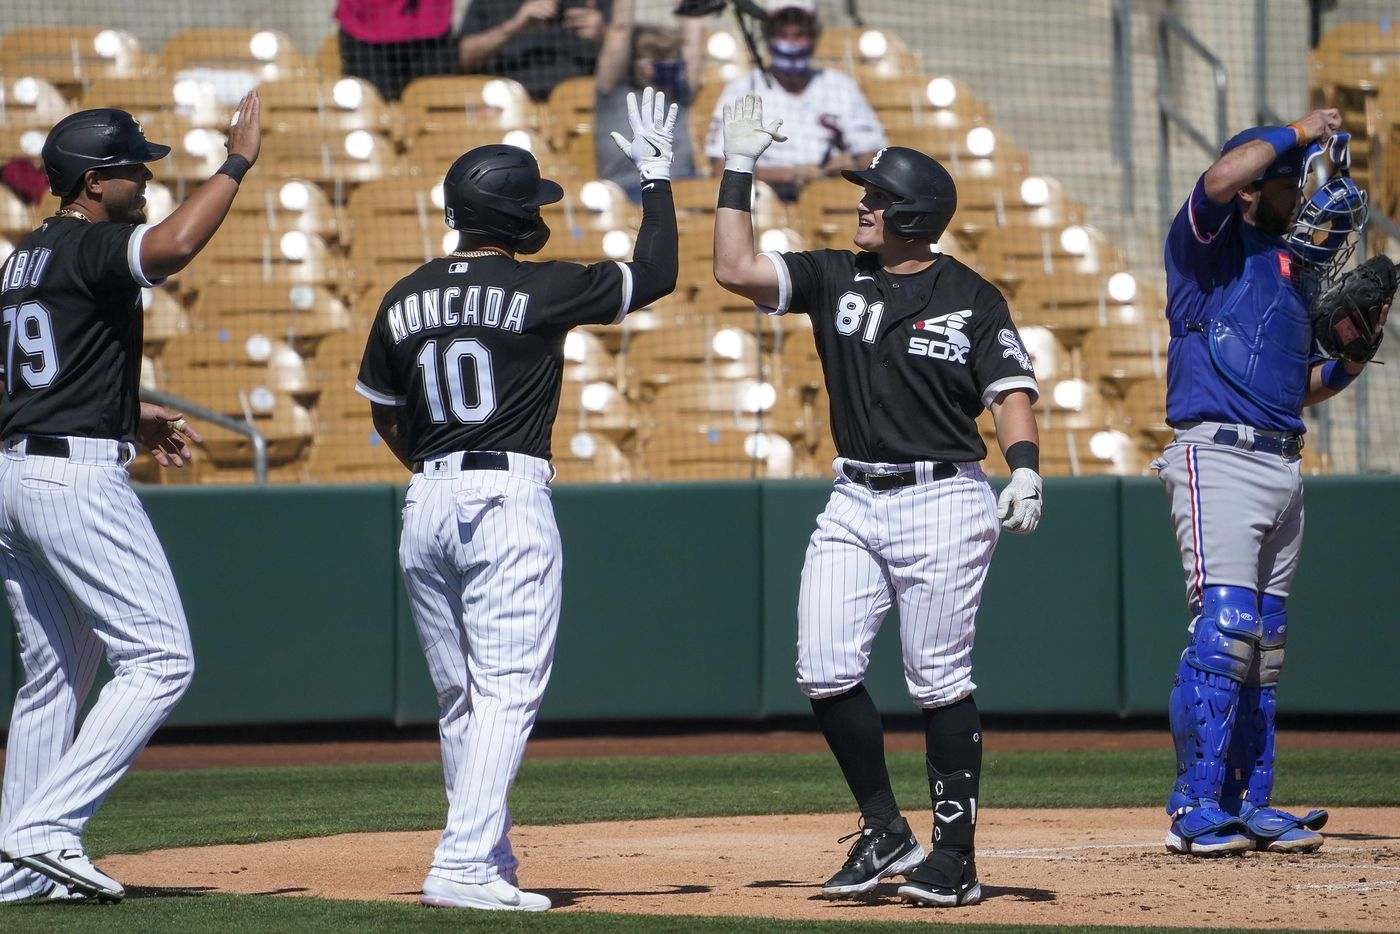 Chicago White Sox designated hitter Andrew Vaughn (81) celebrates with teammates Yoan Moncada and Jose Abreu after driving them in on a 3-run home run off of Texas Rangers pitcher Kohei Arihara during the first inning of a spring training game at Camelback Ranch on Tuesday, March 2, 2021, in Phoenix, Ariz.